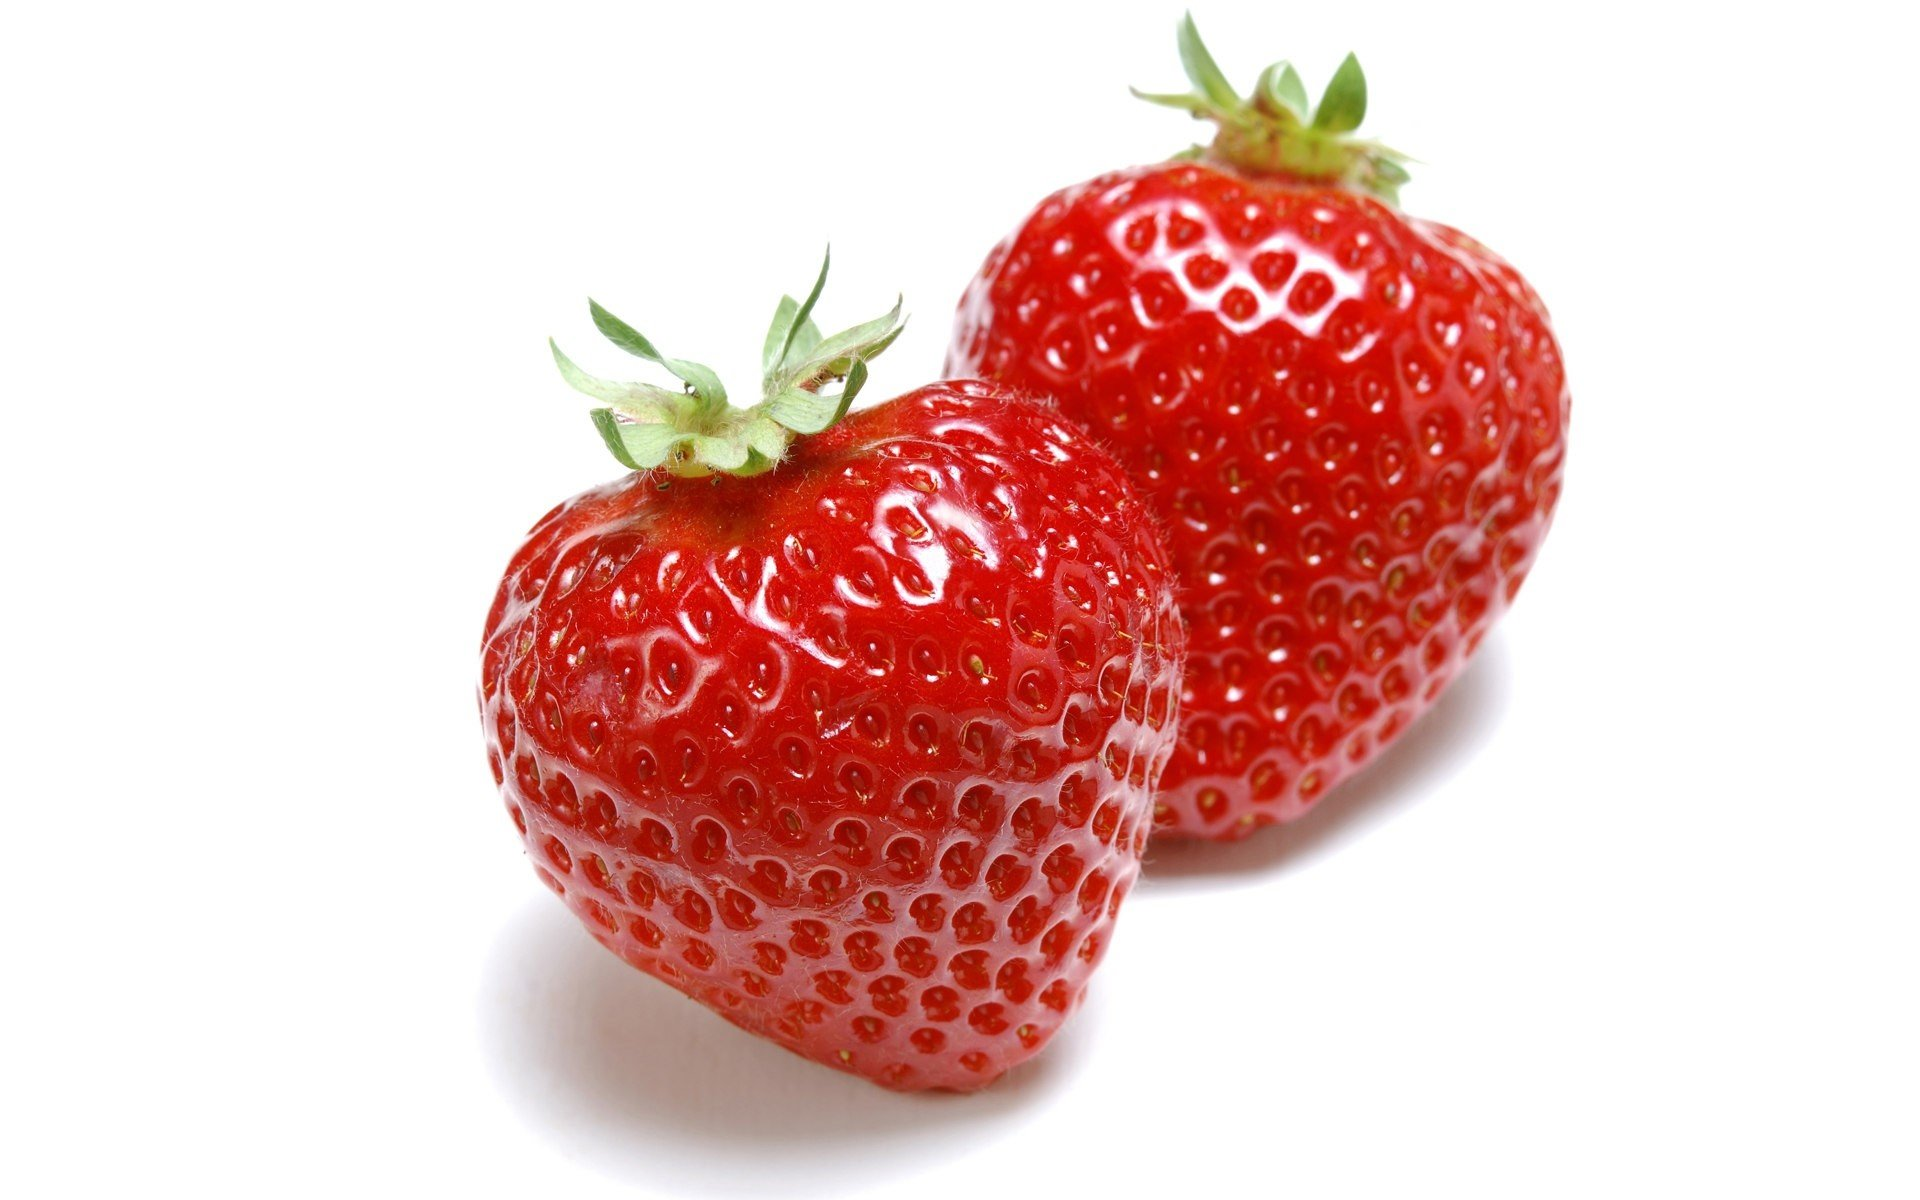 Strawberry Background image